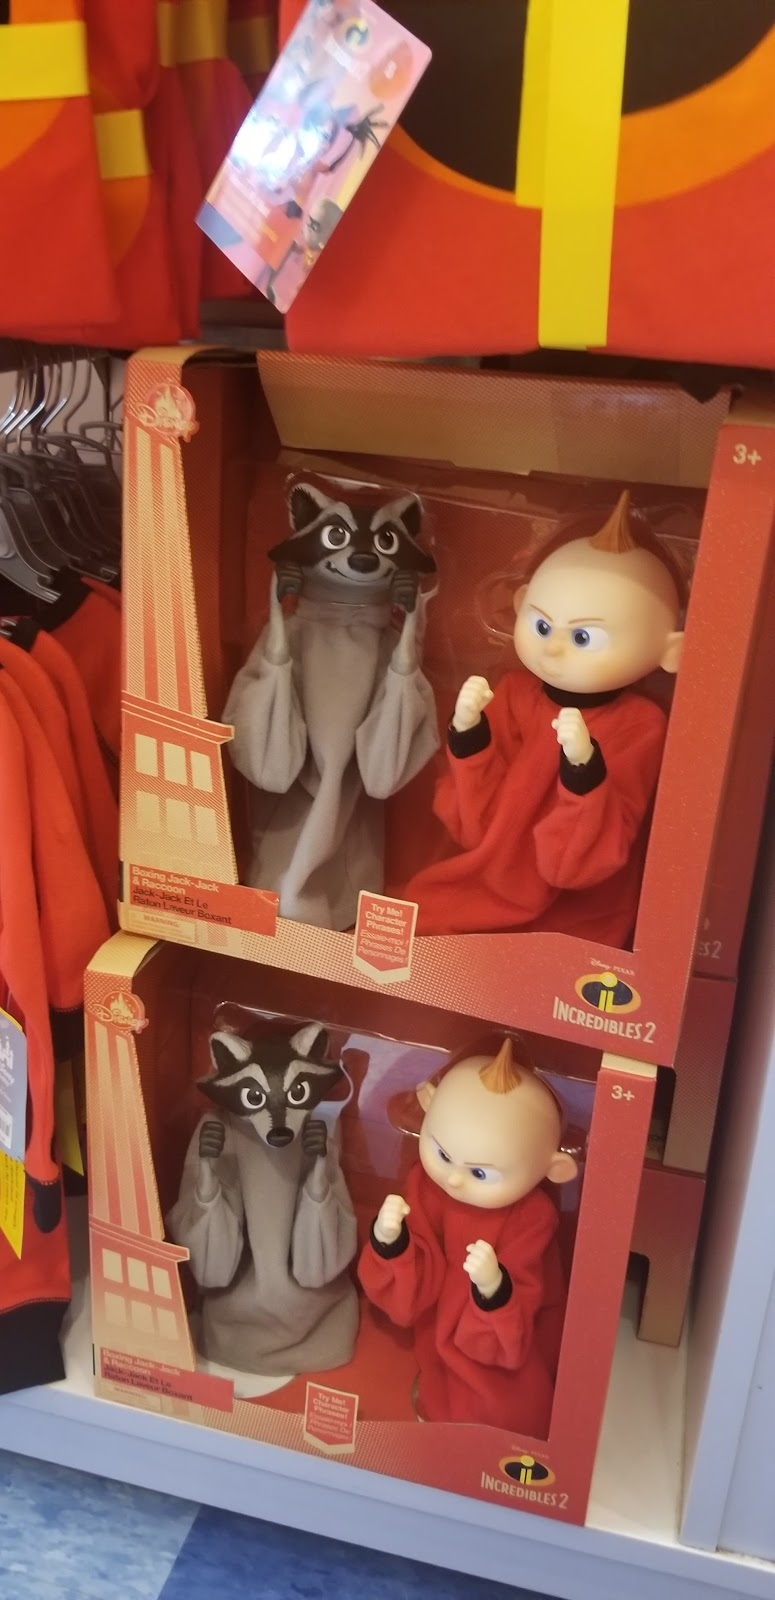 Disney Store and Family Updates